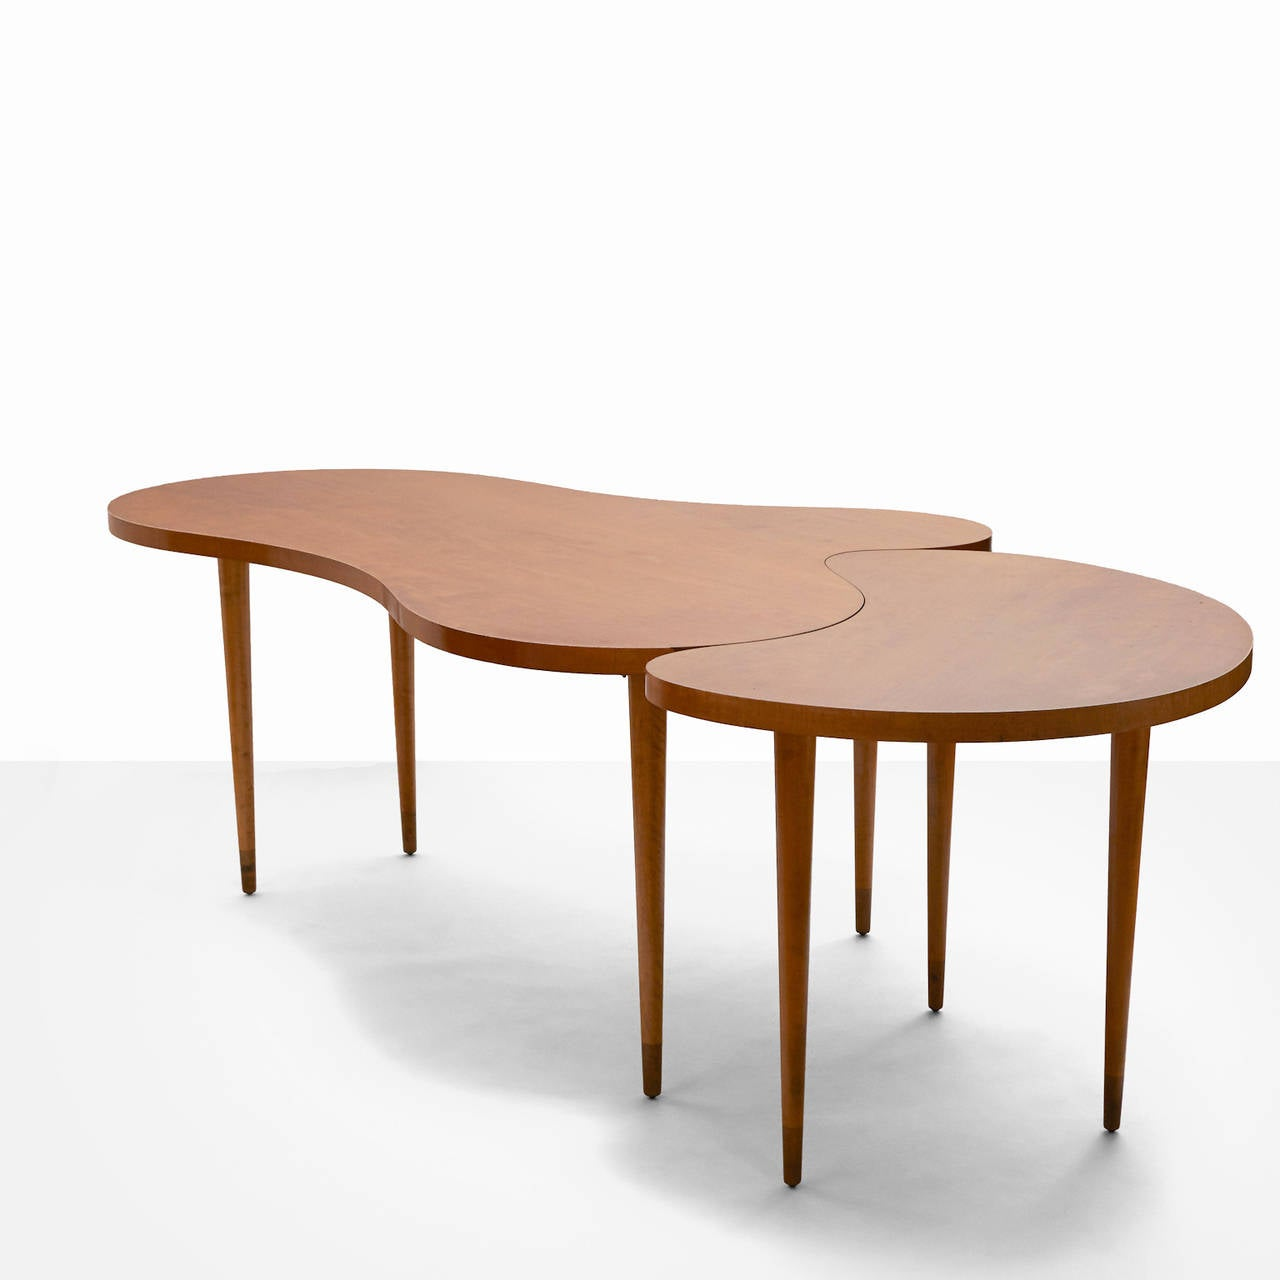 Bow Window Curved Window Seating Narrow Tall Fixed: Edmond Spence Two-Part Maple Dining Table At 1stdibs